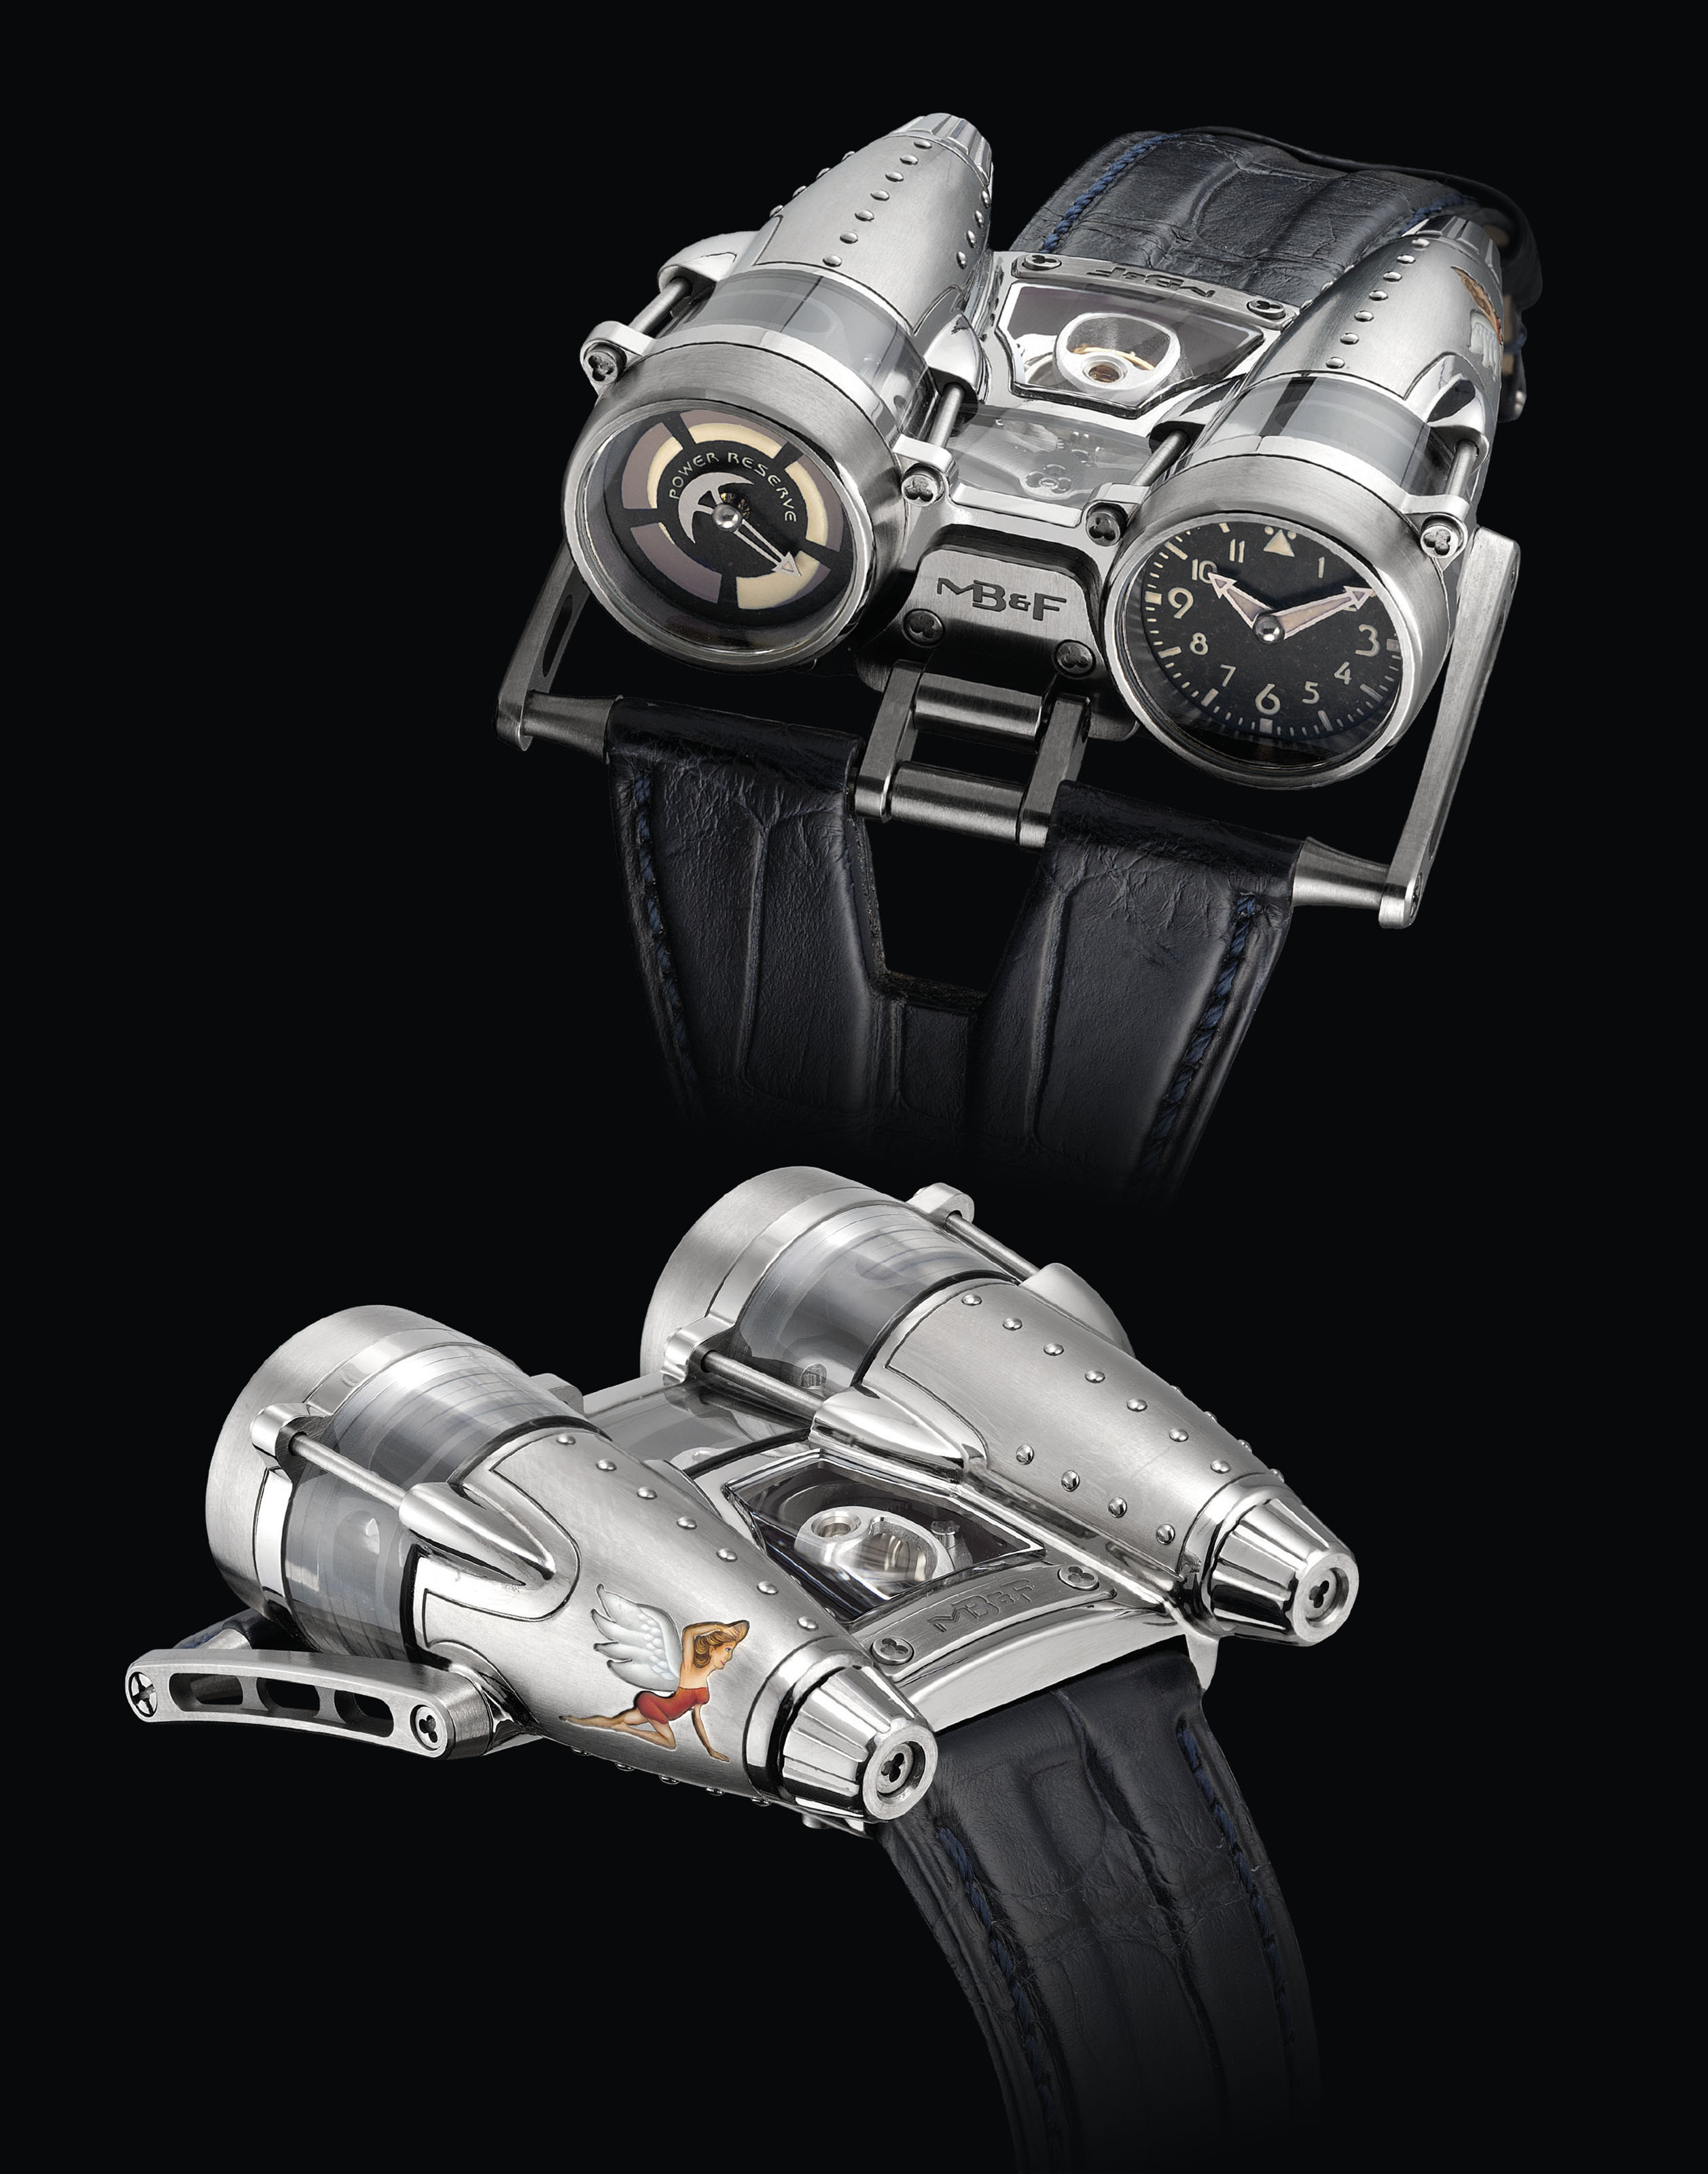 MB&F. A VERY FINE AND EXTREMEL